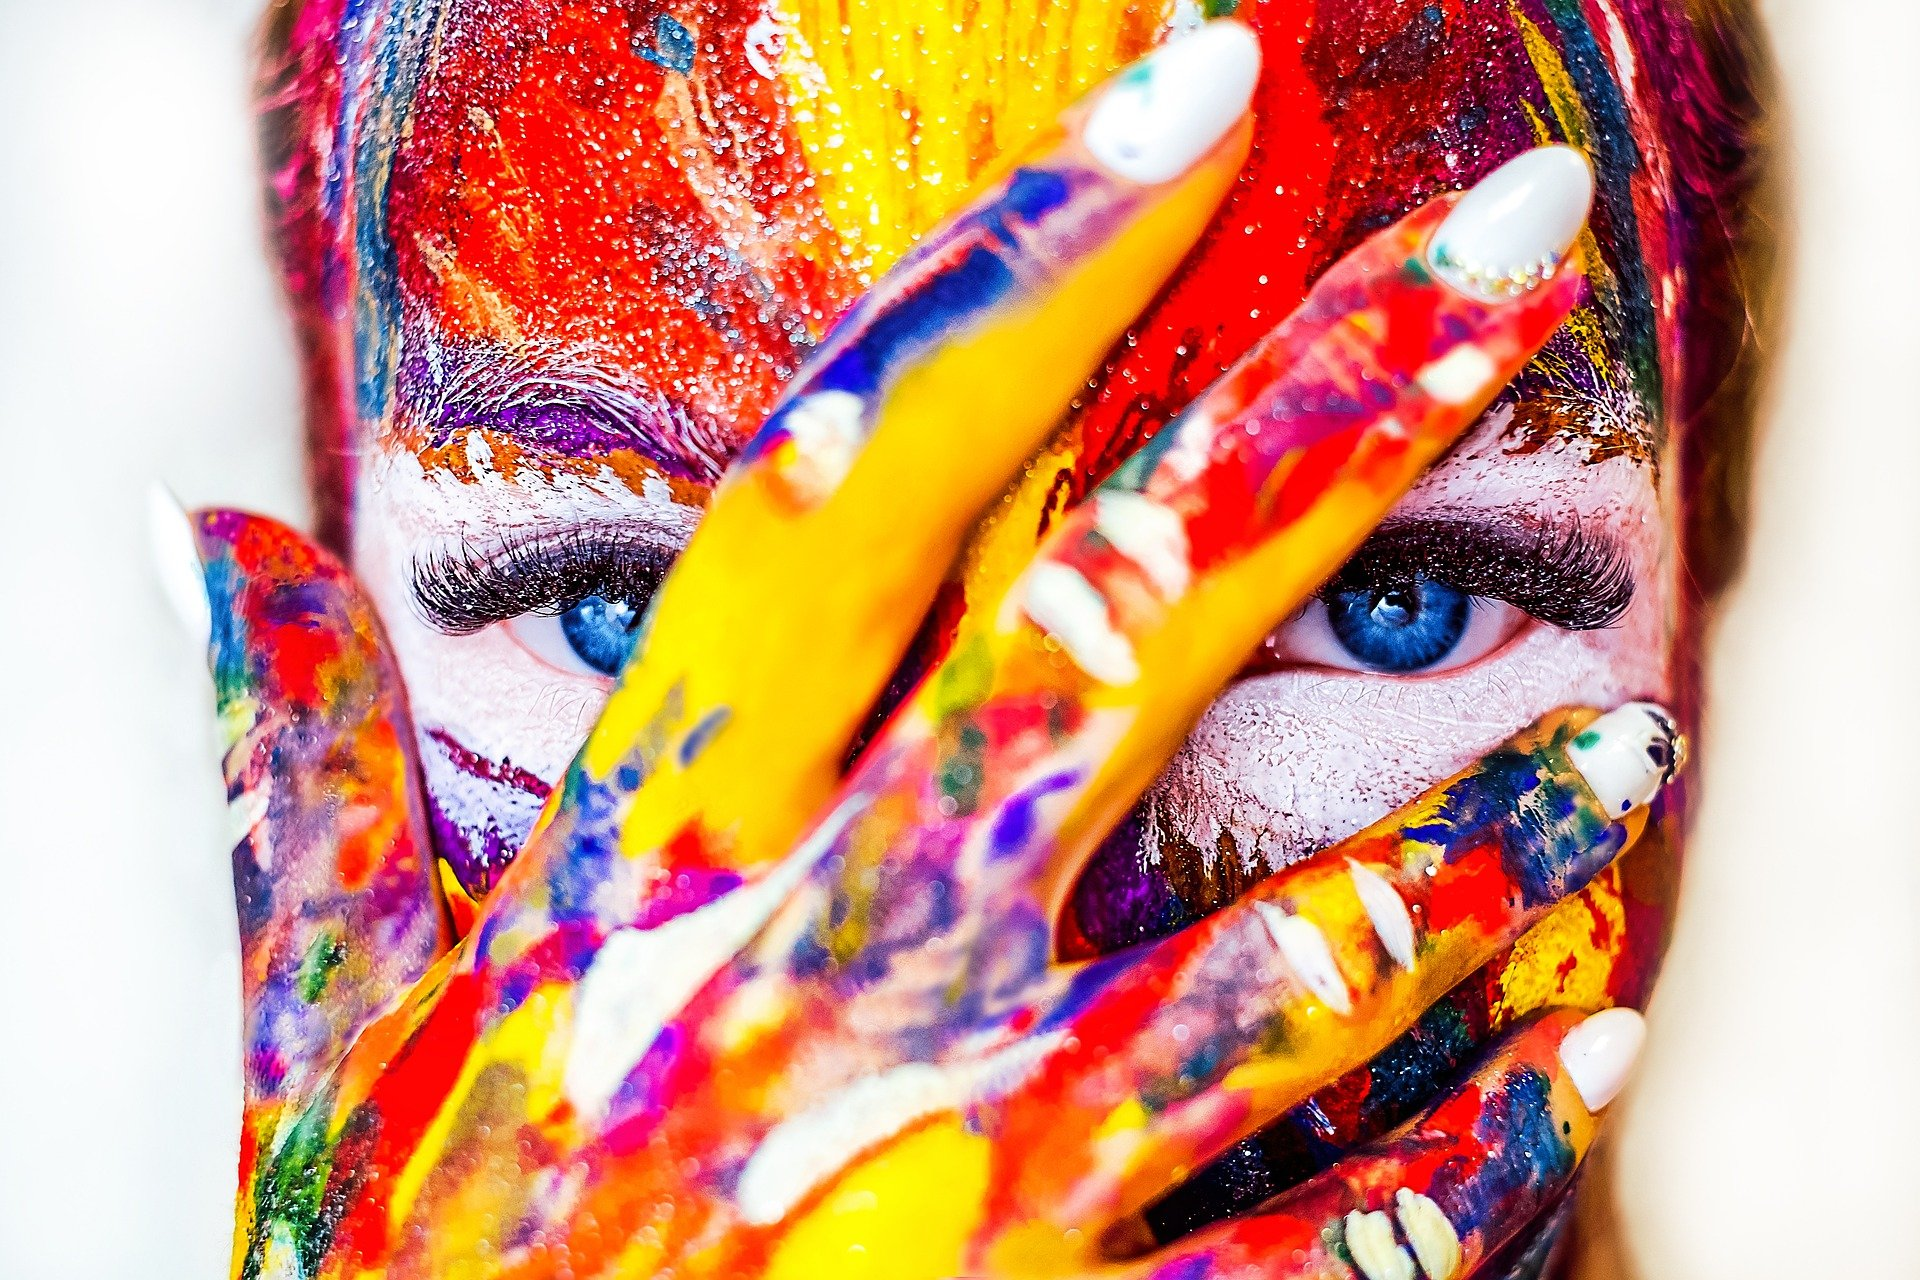 Photo | Painted Hand on Painted face